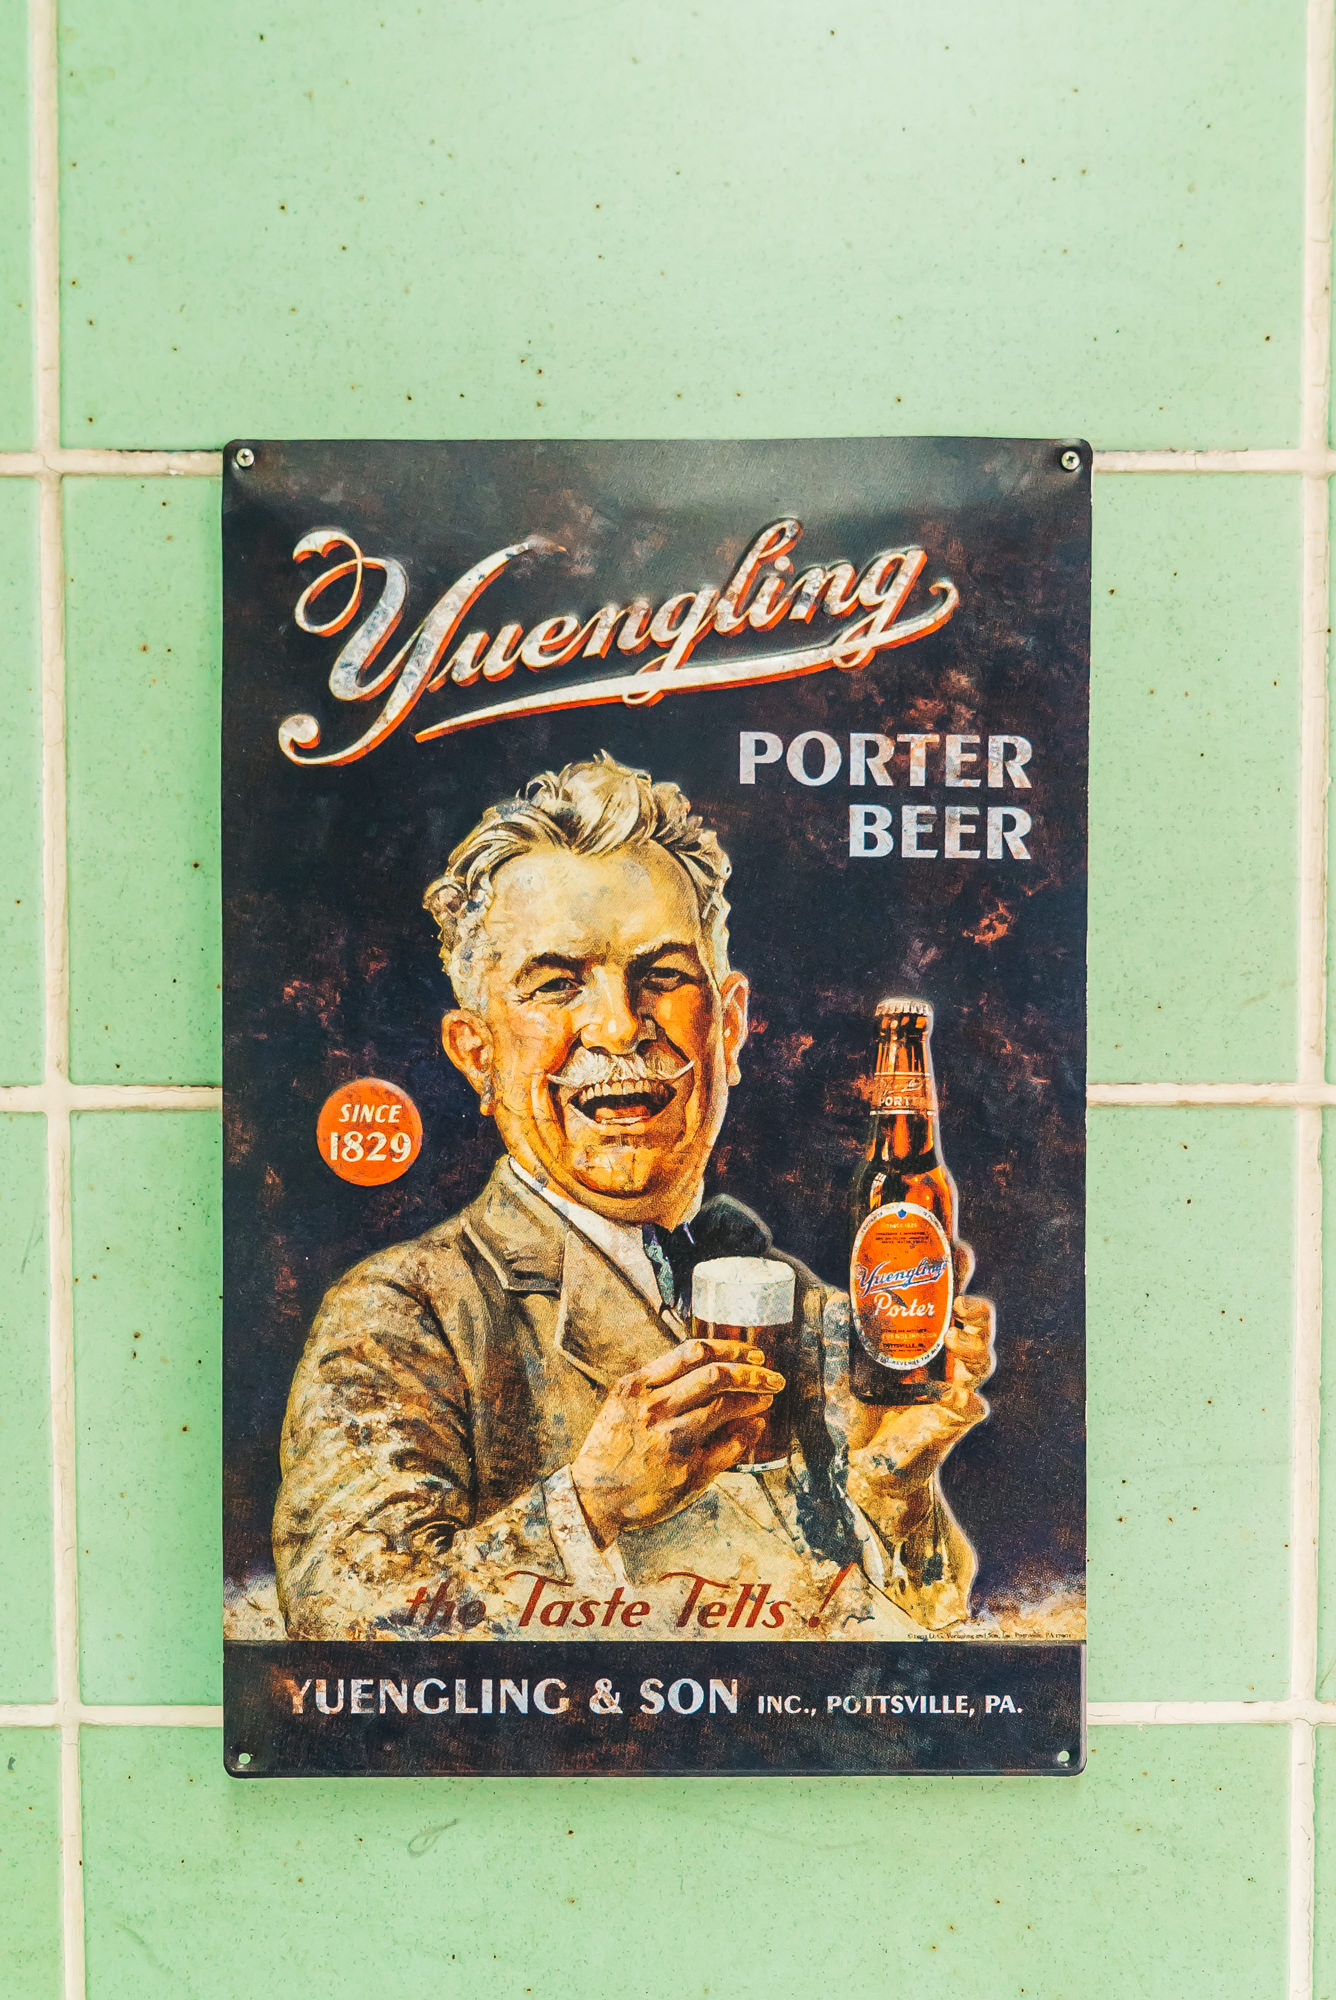 love these old yuengling ads